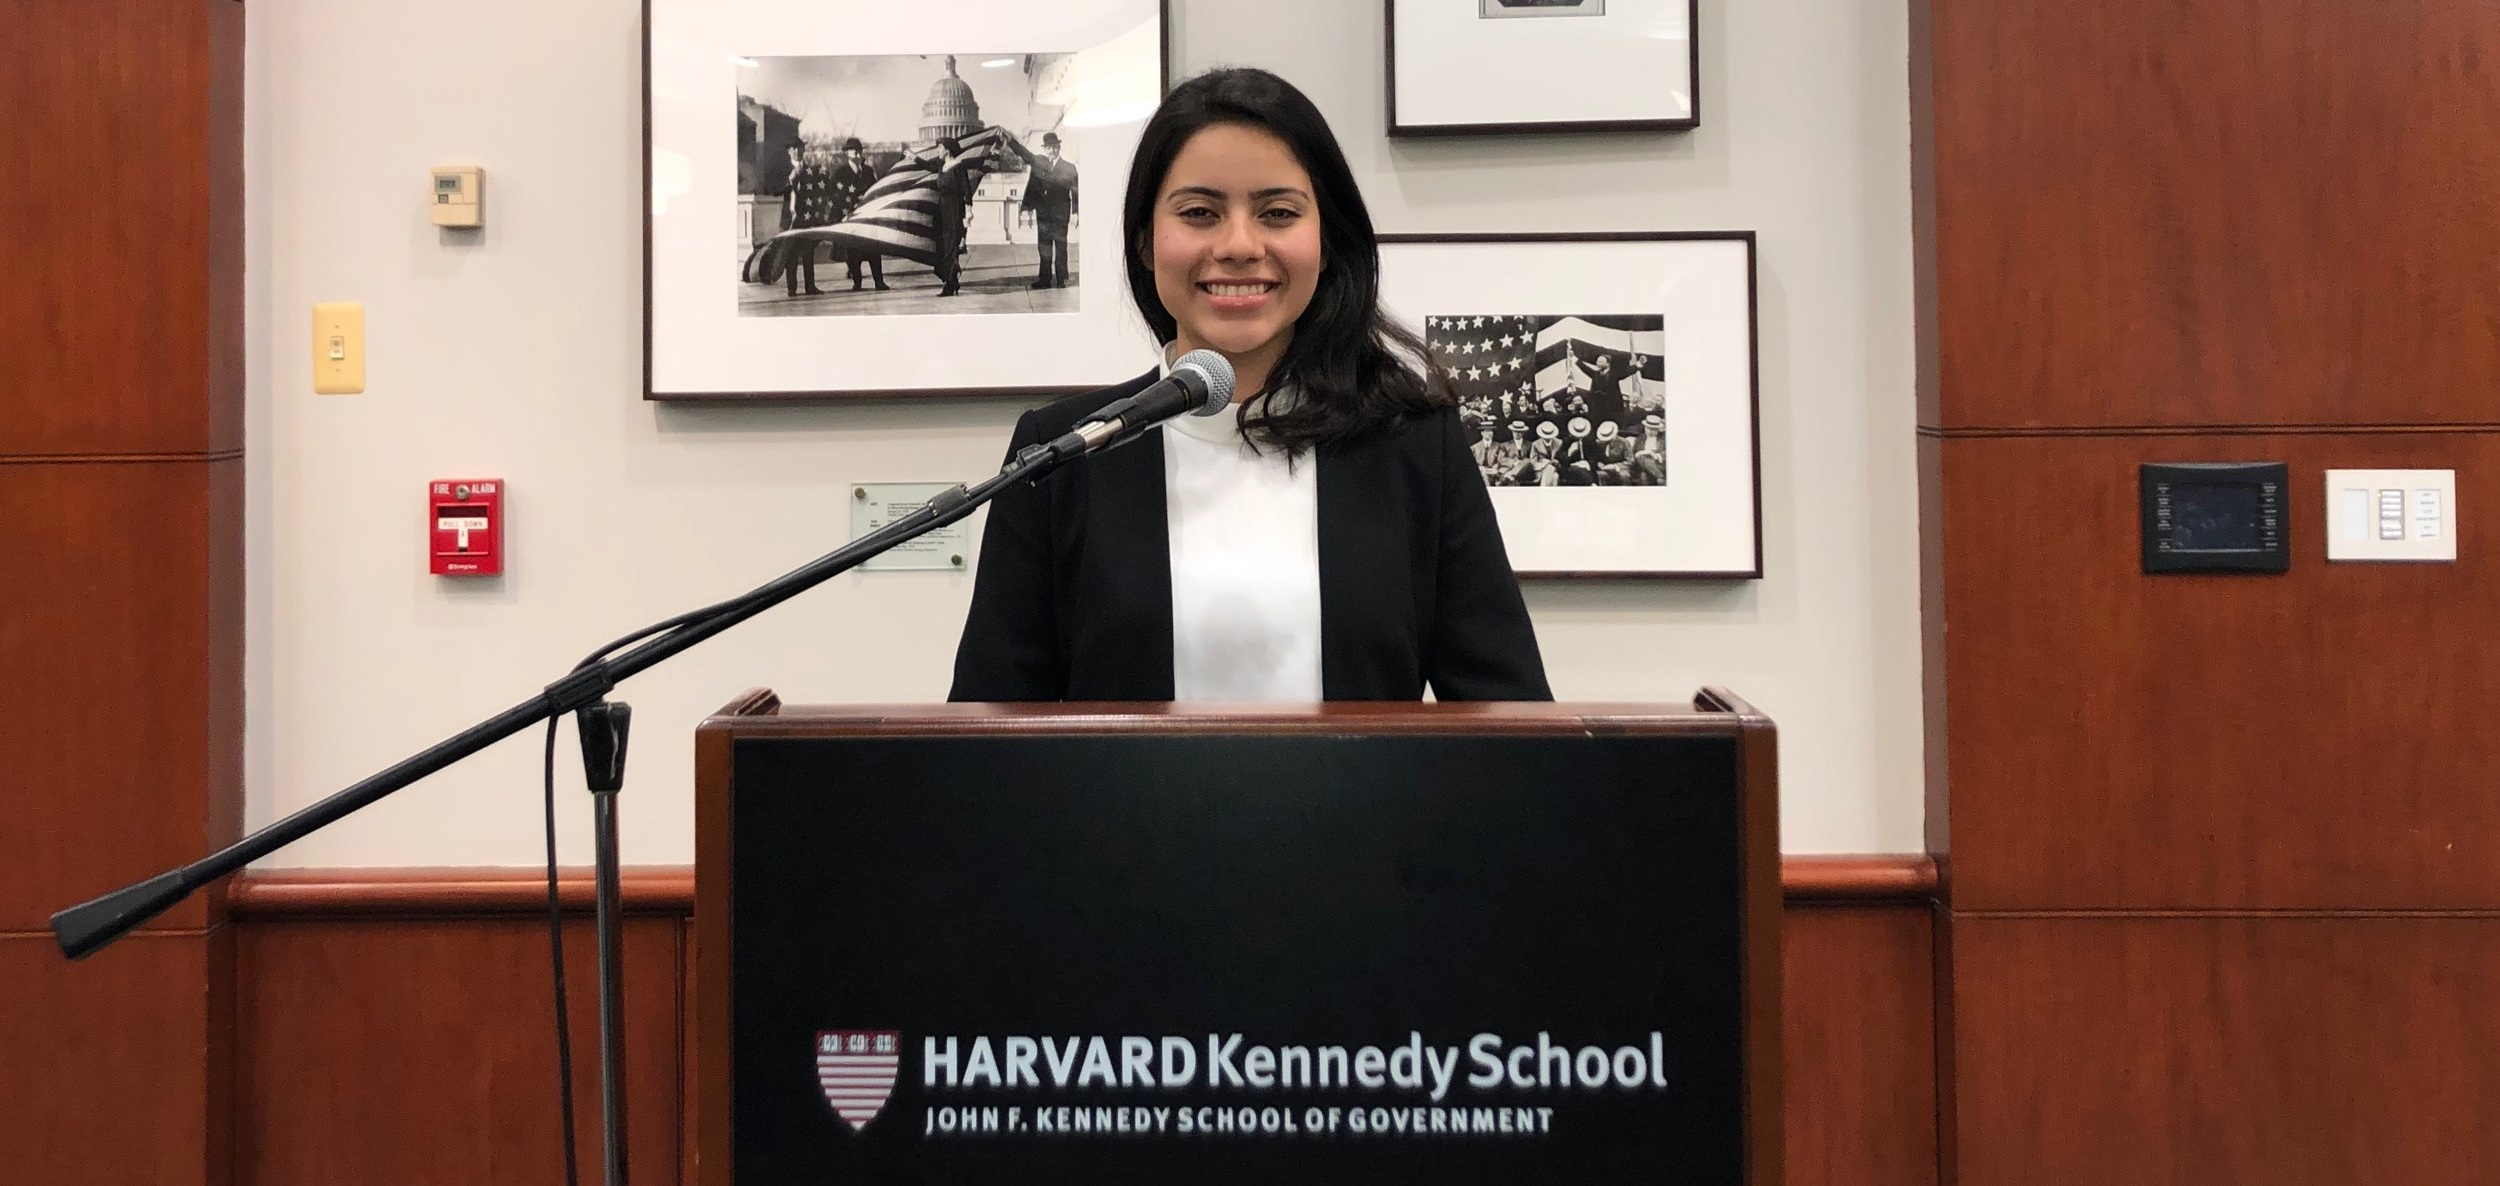 Katherine is pictured at the Public Policy and Leadership Conference at the Harvard Kennedy School of Government